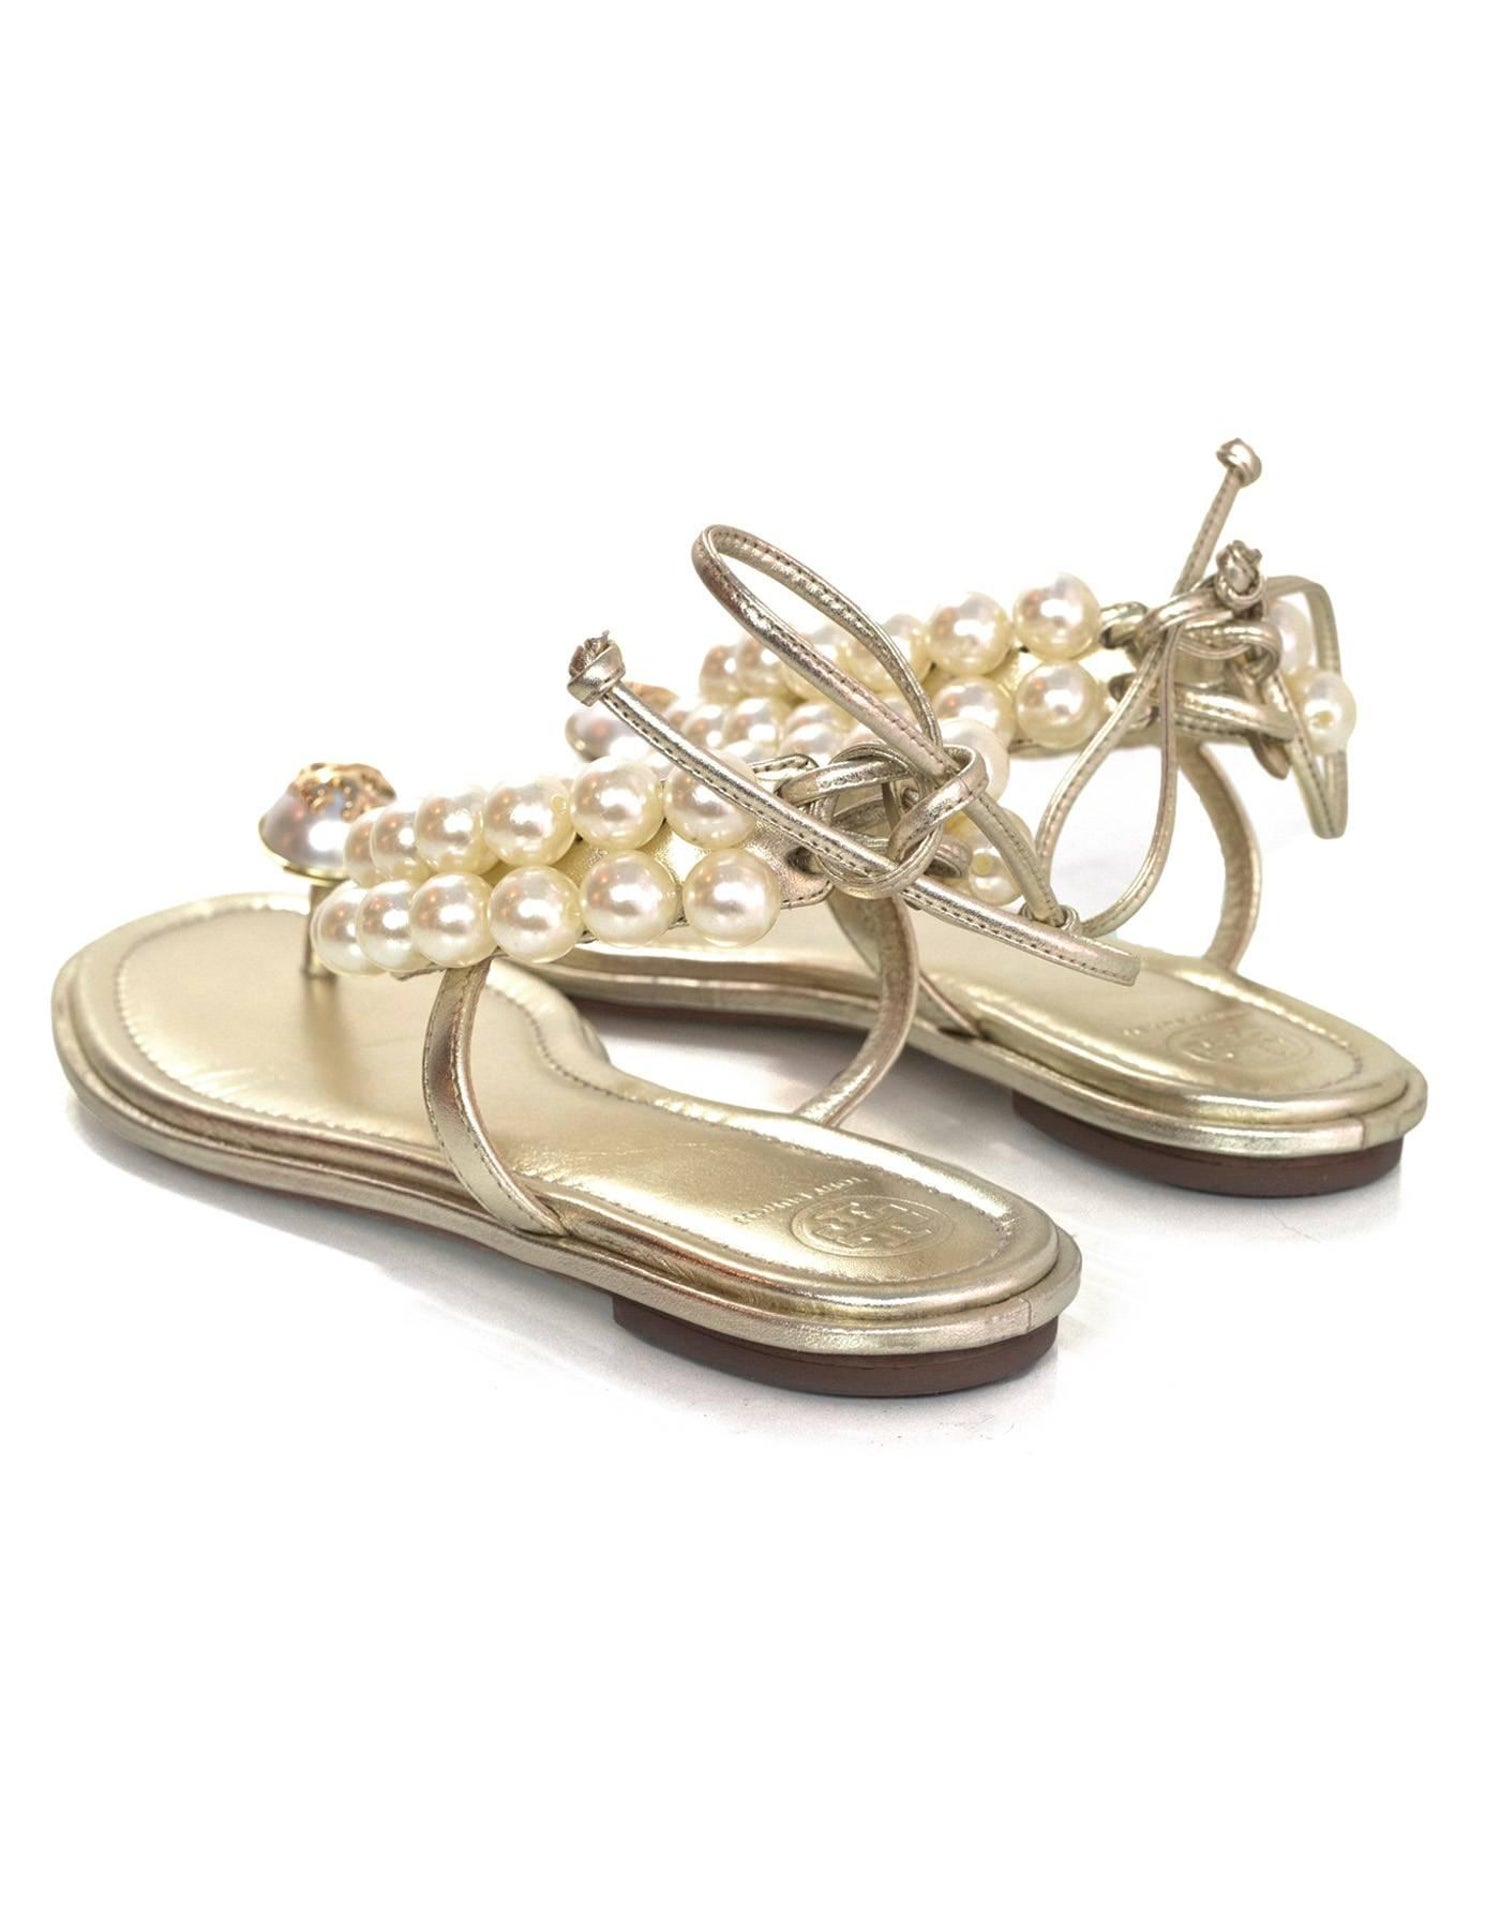 bf95c860ce6b05 Tory Burch Melody Pearl Sandals Sz 9.5 rt.  325 For Sale at 1stdibs